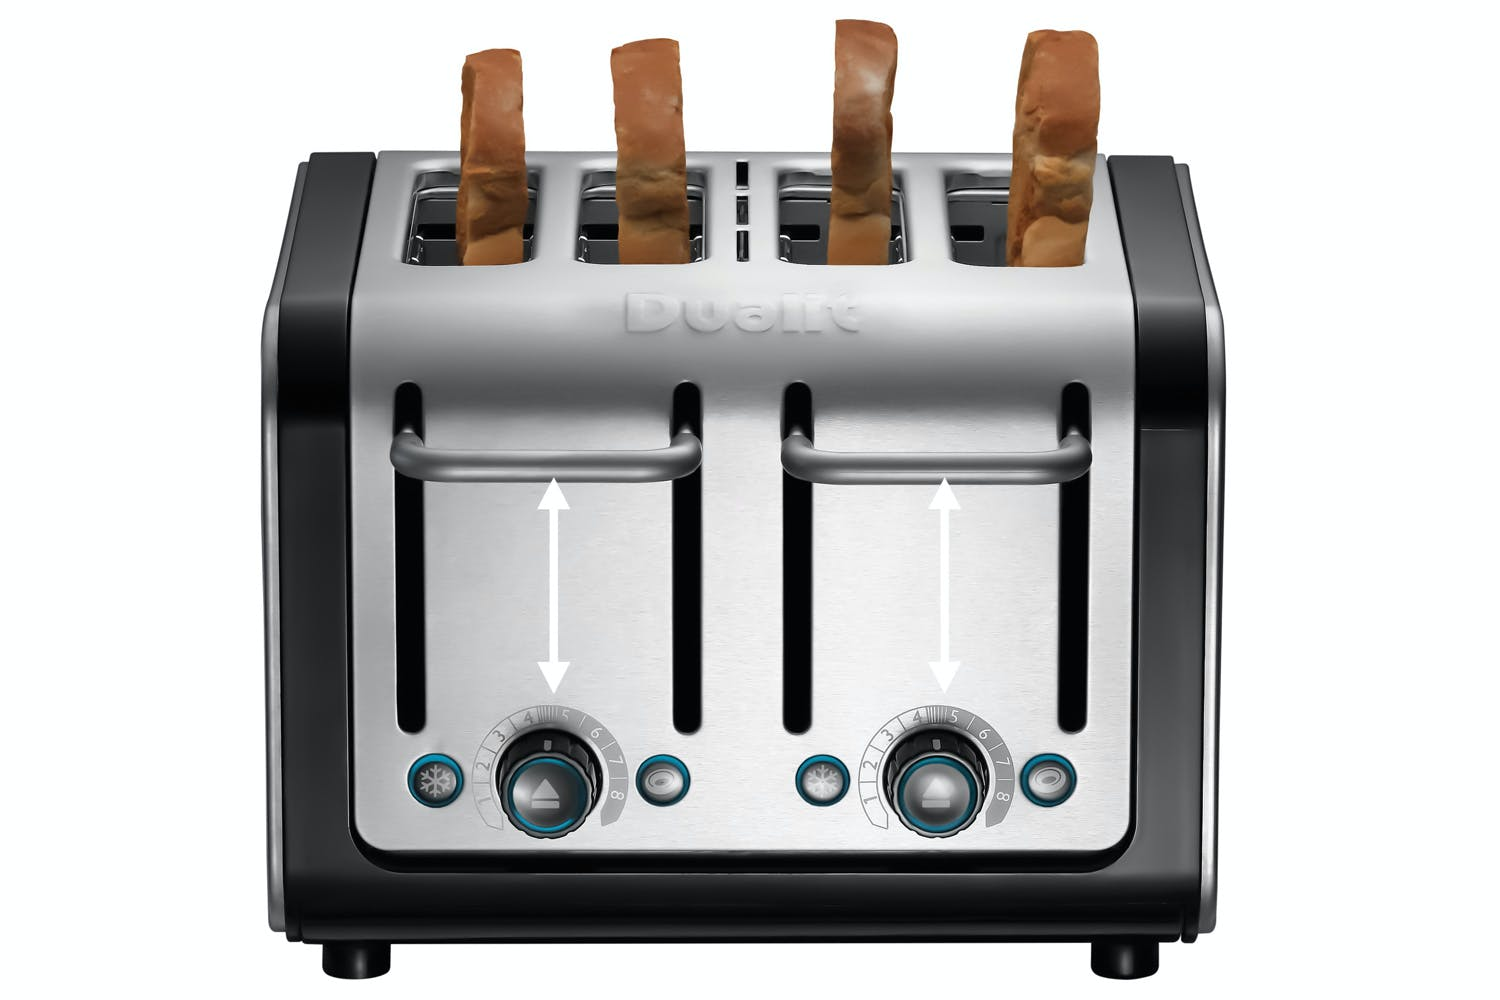 toaster u delivery appliances free small buy kitchen gbuk toasters dualit cream currys pdt slice household